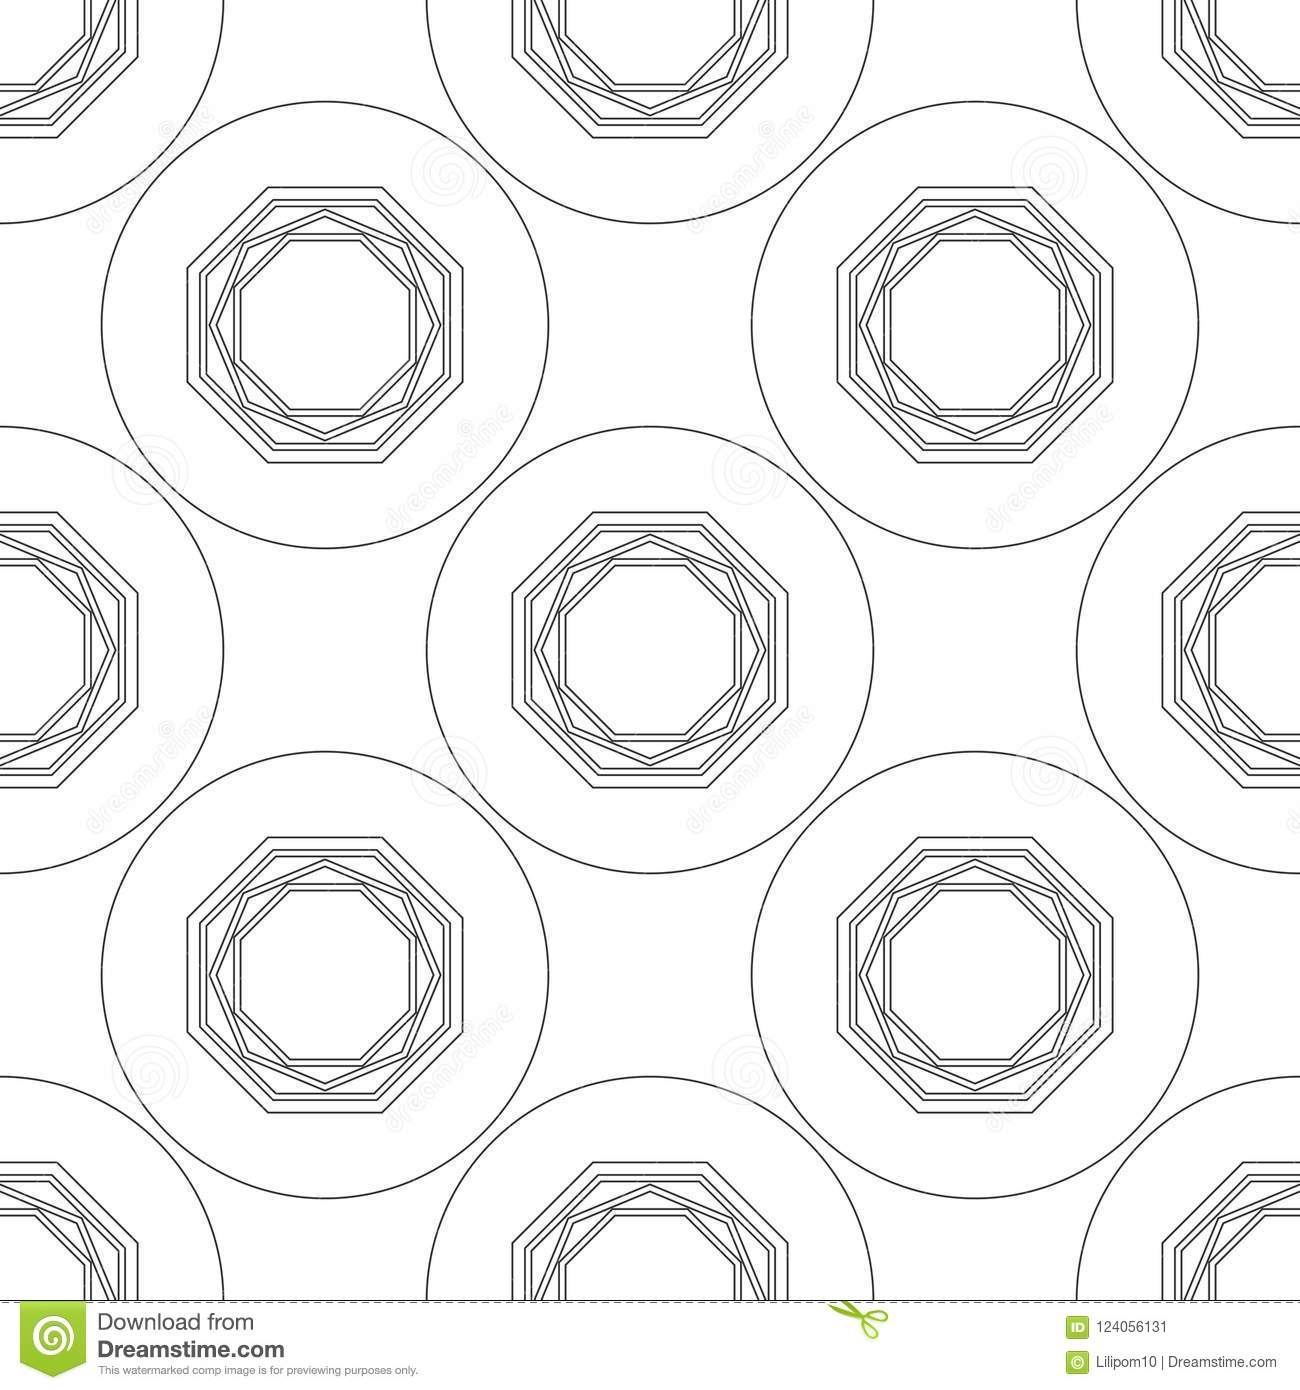 Black And White Geometric Seamless Pattern For Coloring Book, Page ...